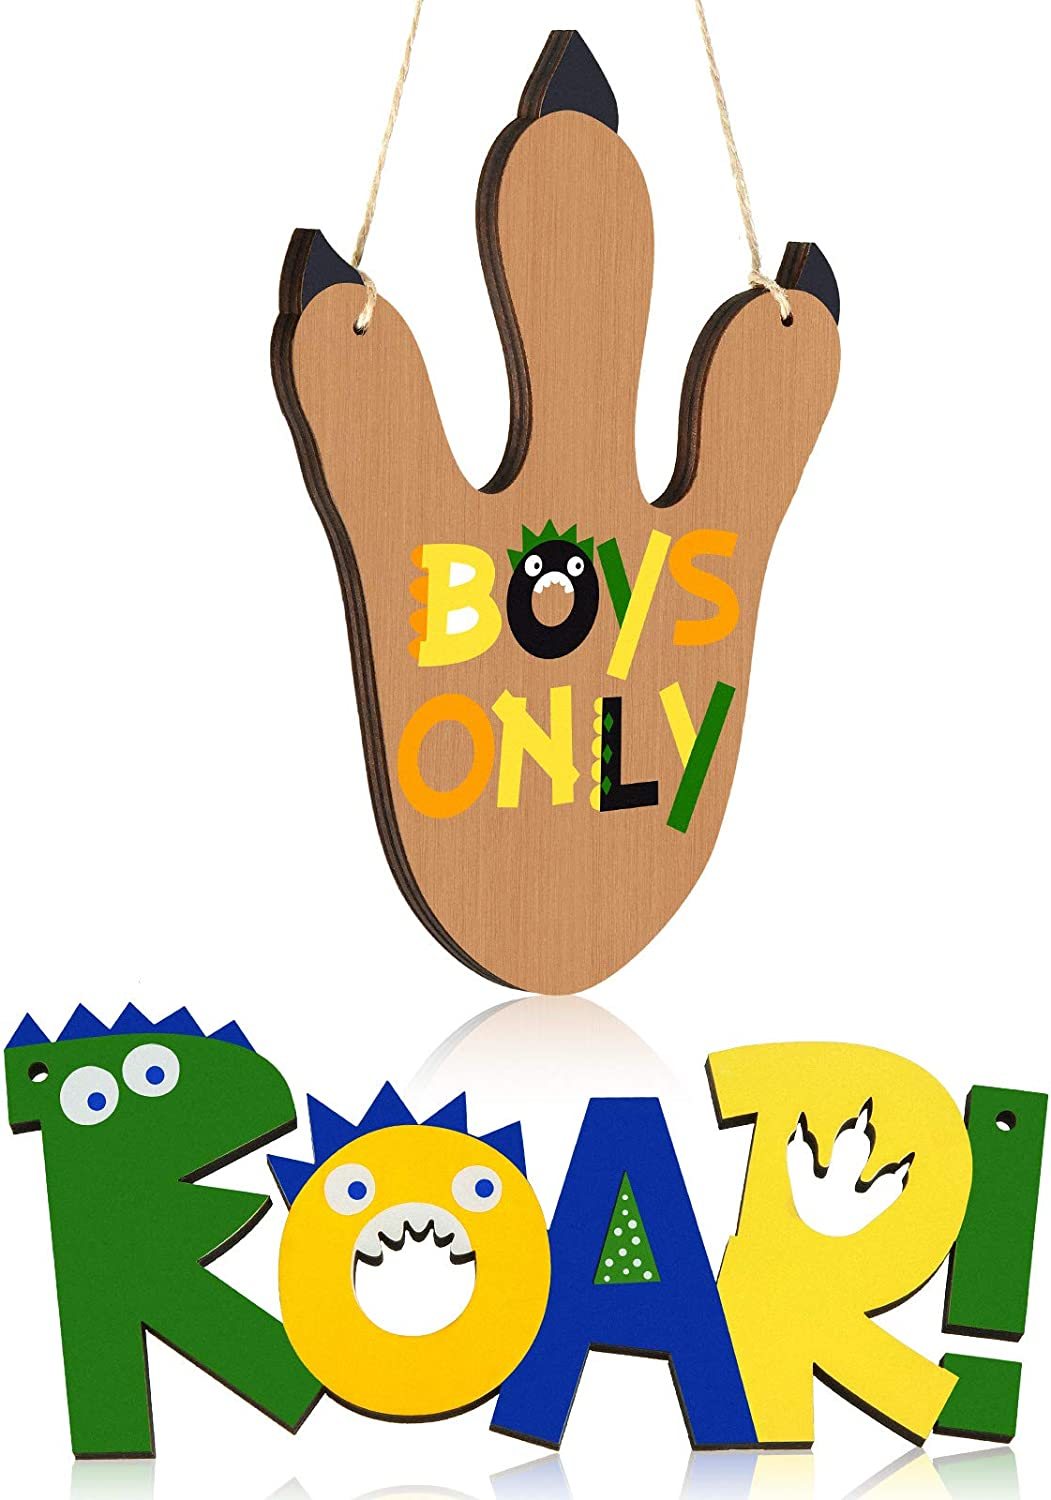 Jetec 2 Pieces Dino Paw Wooden Wall Decor Boys Only Roar Wood Wall Decoration Dinosaur Hanging Wood Decor for Boys Kids Room Birthday Party